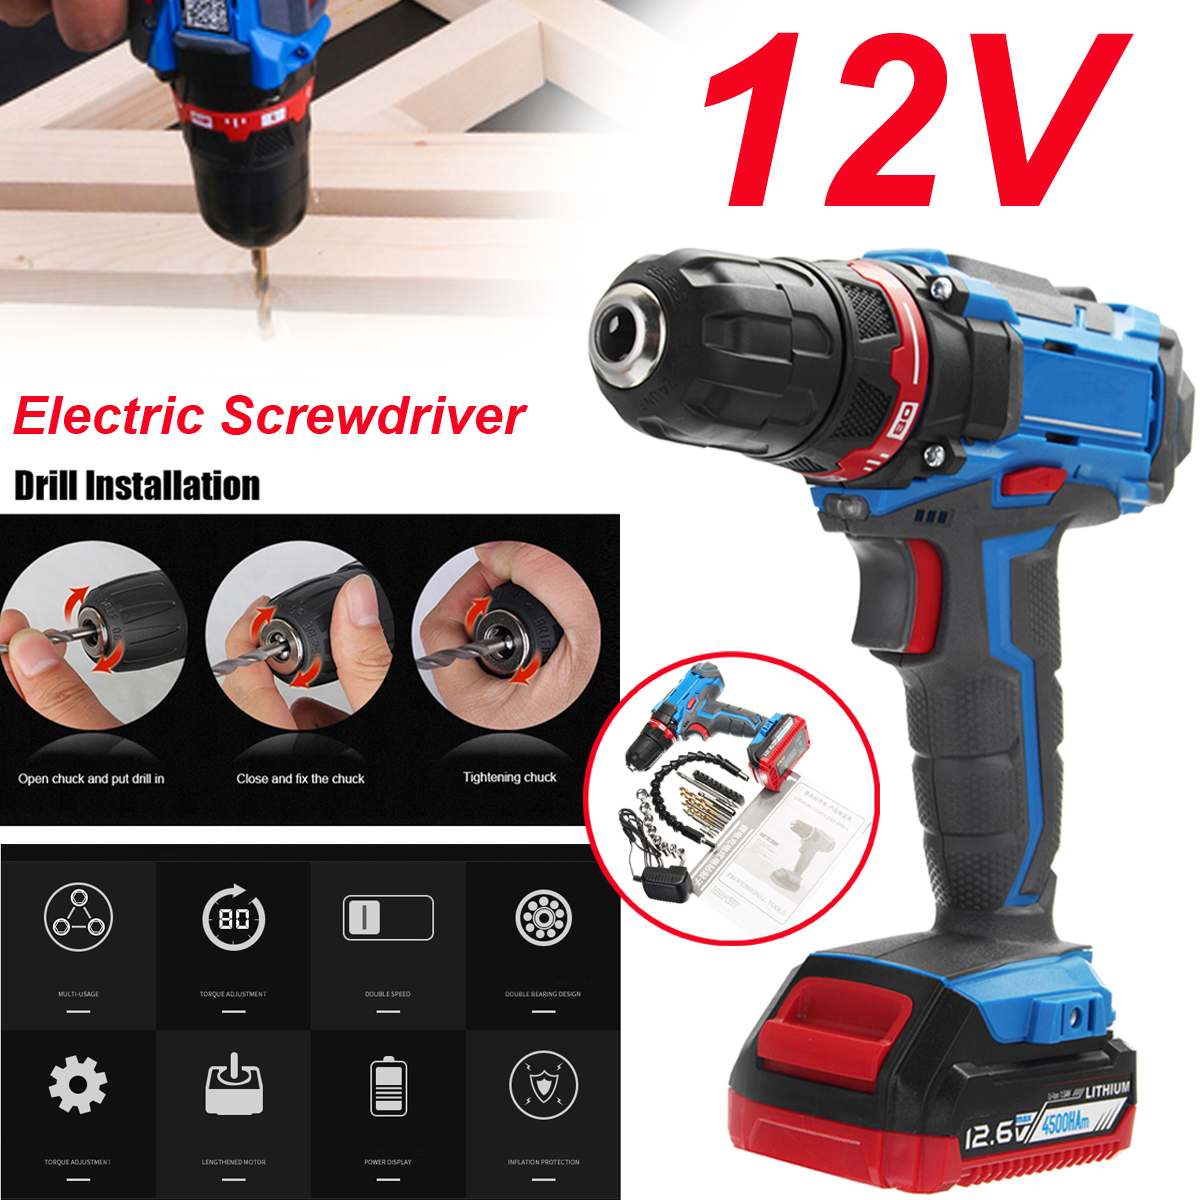 12V Electric Screwdriver Power Screw Driver Drill Set 1 Charger 1 Battery with Accessories